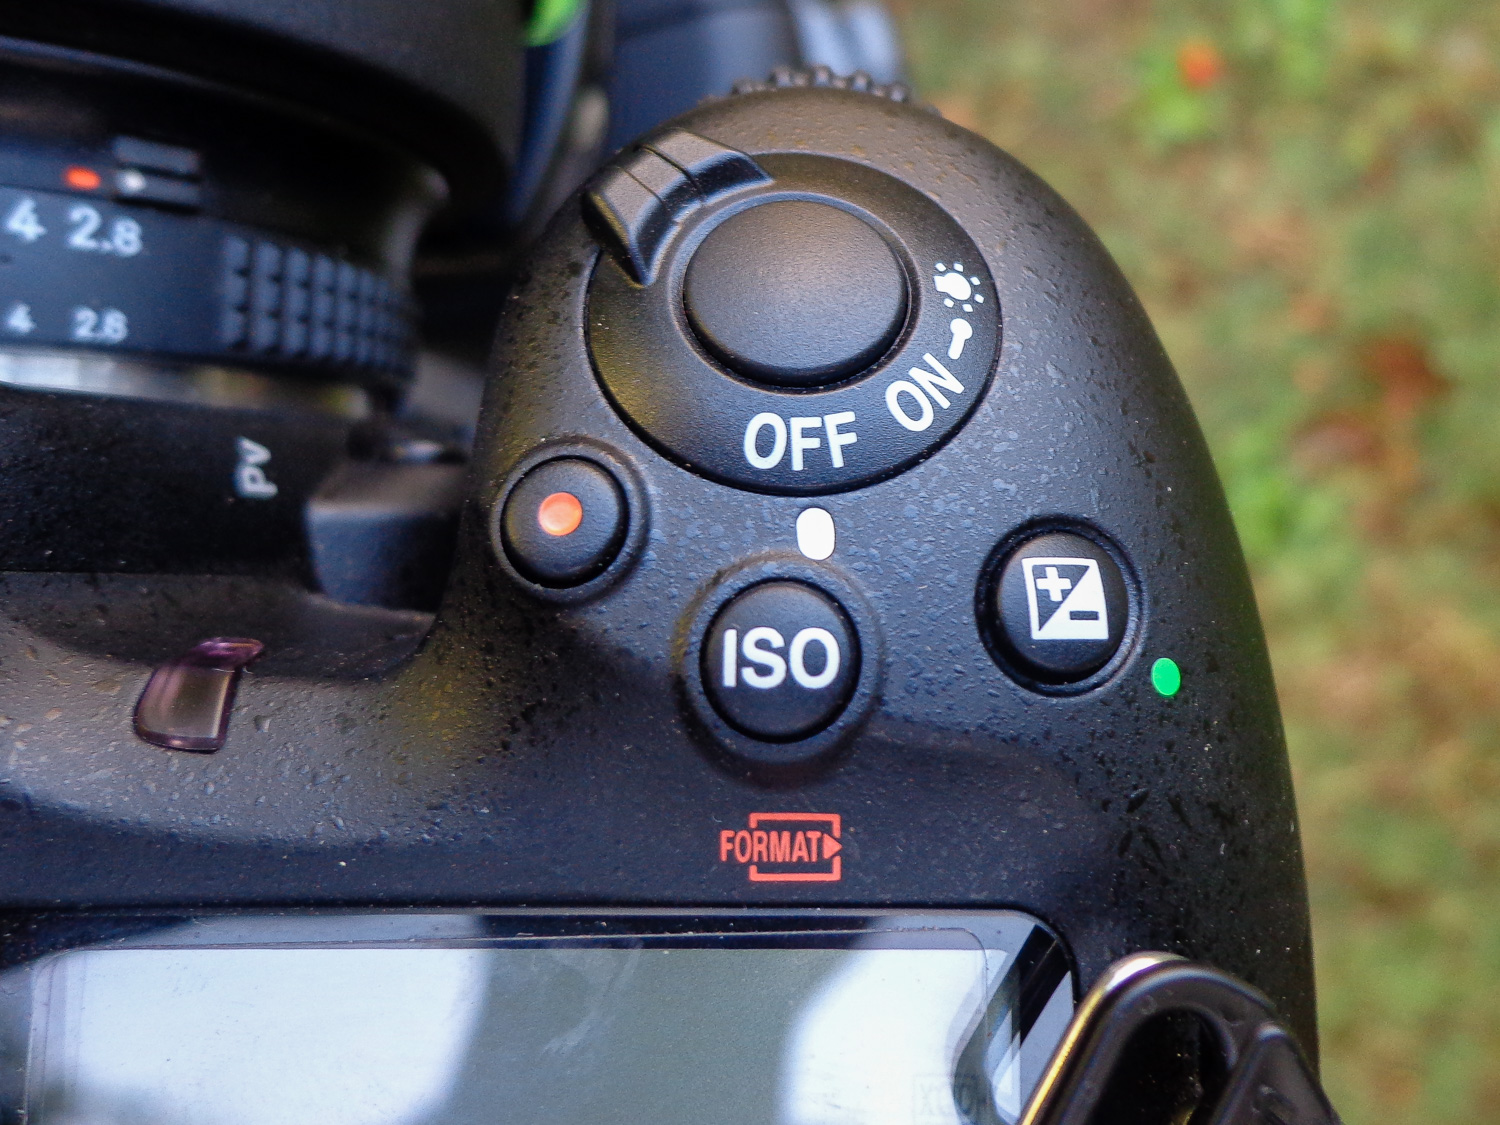 Image: Buttons for Exposure compensation, ISO selection, and movie recording.